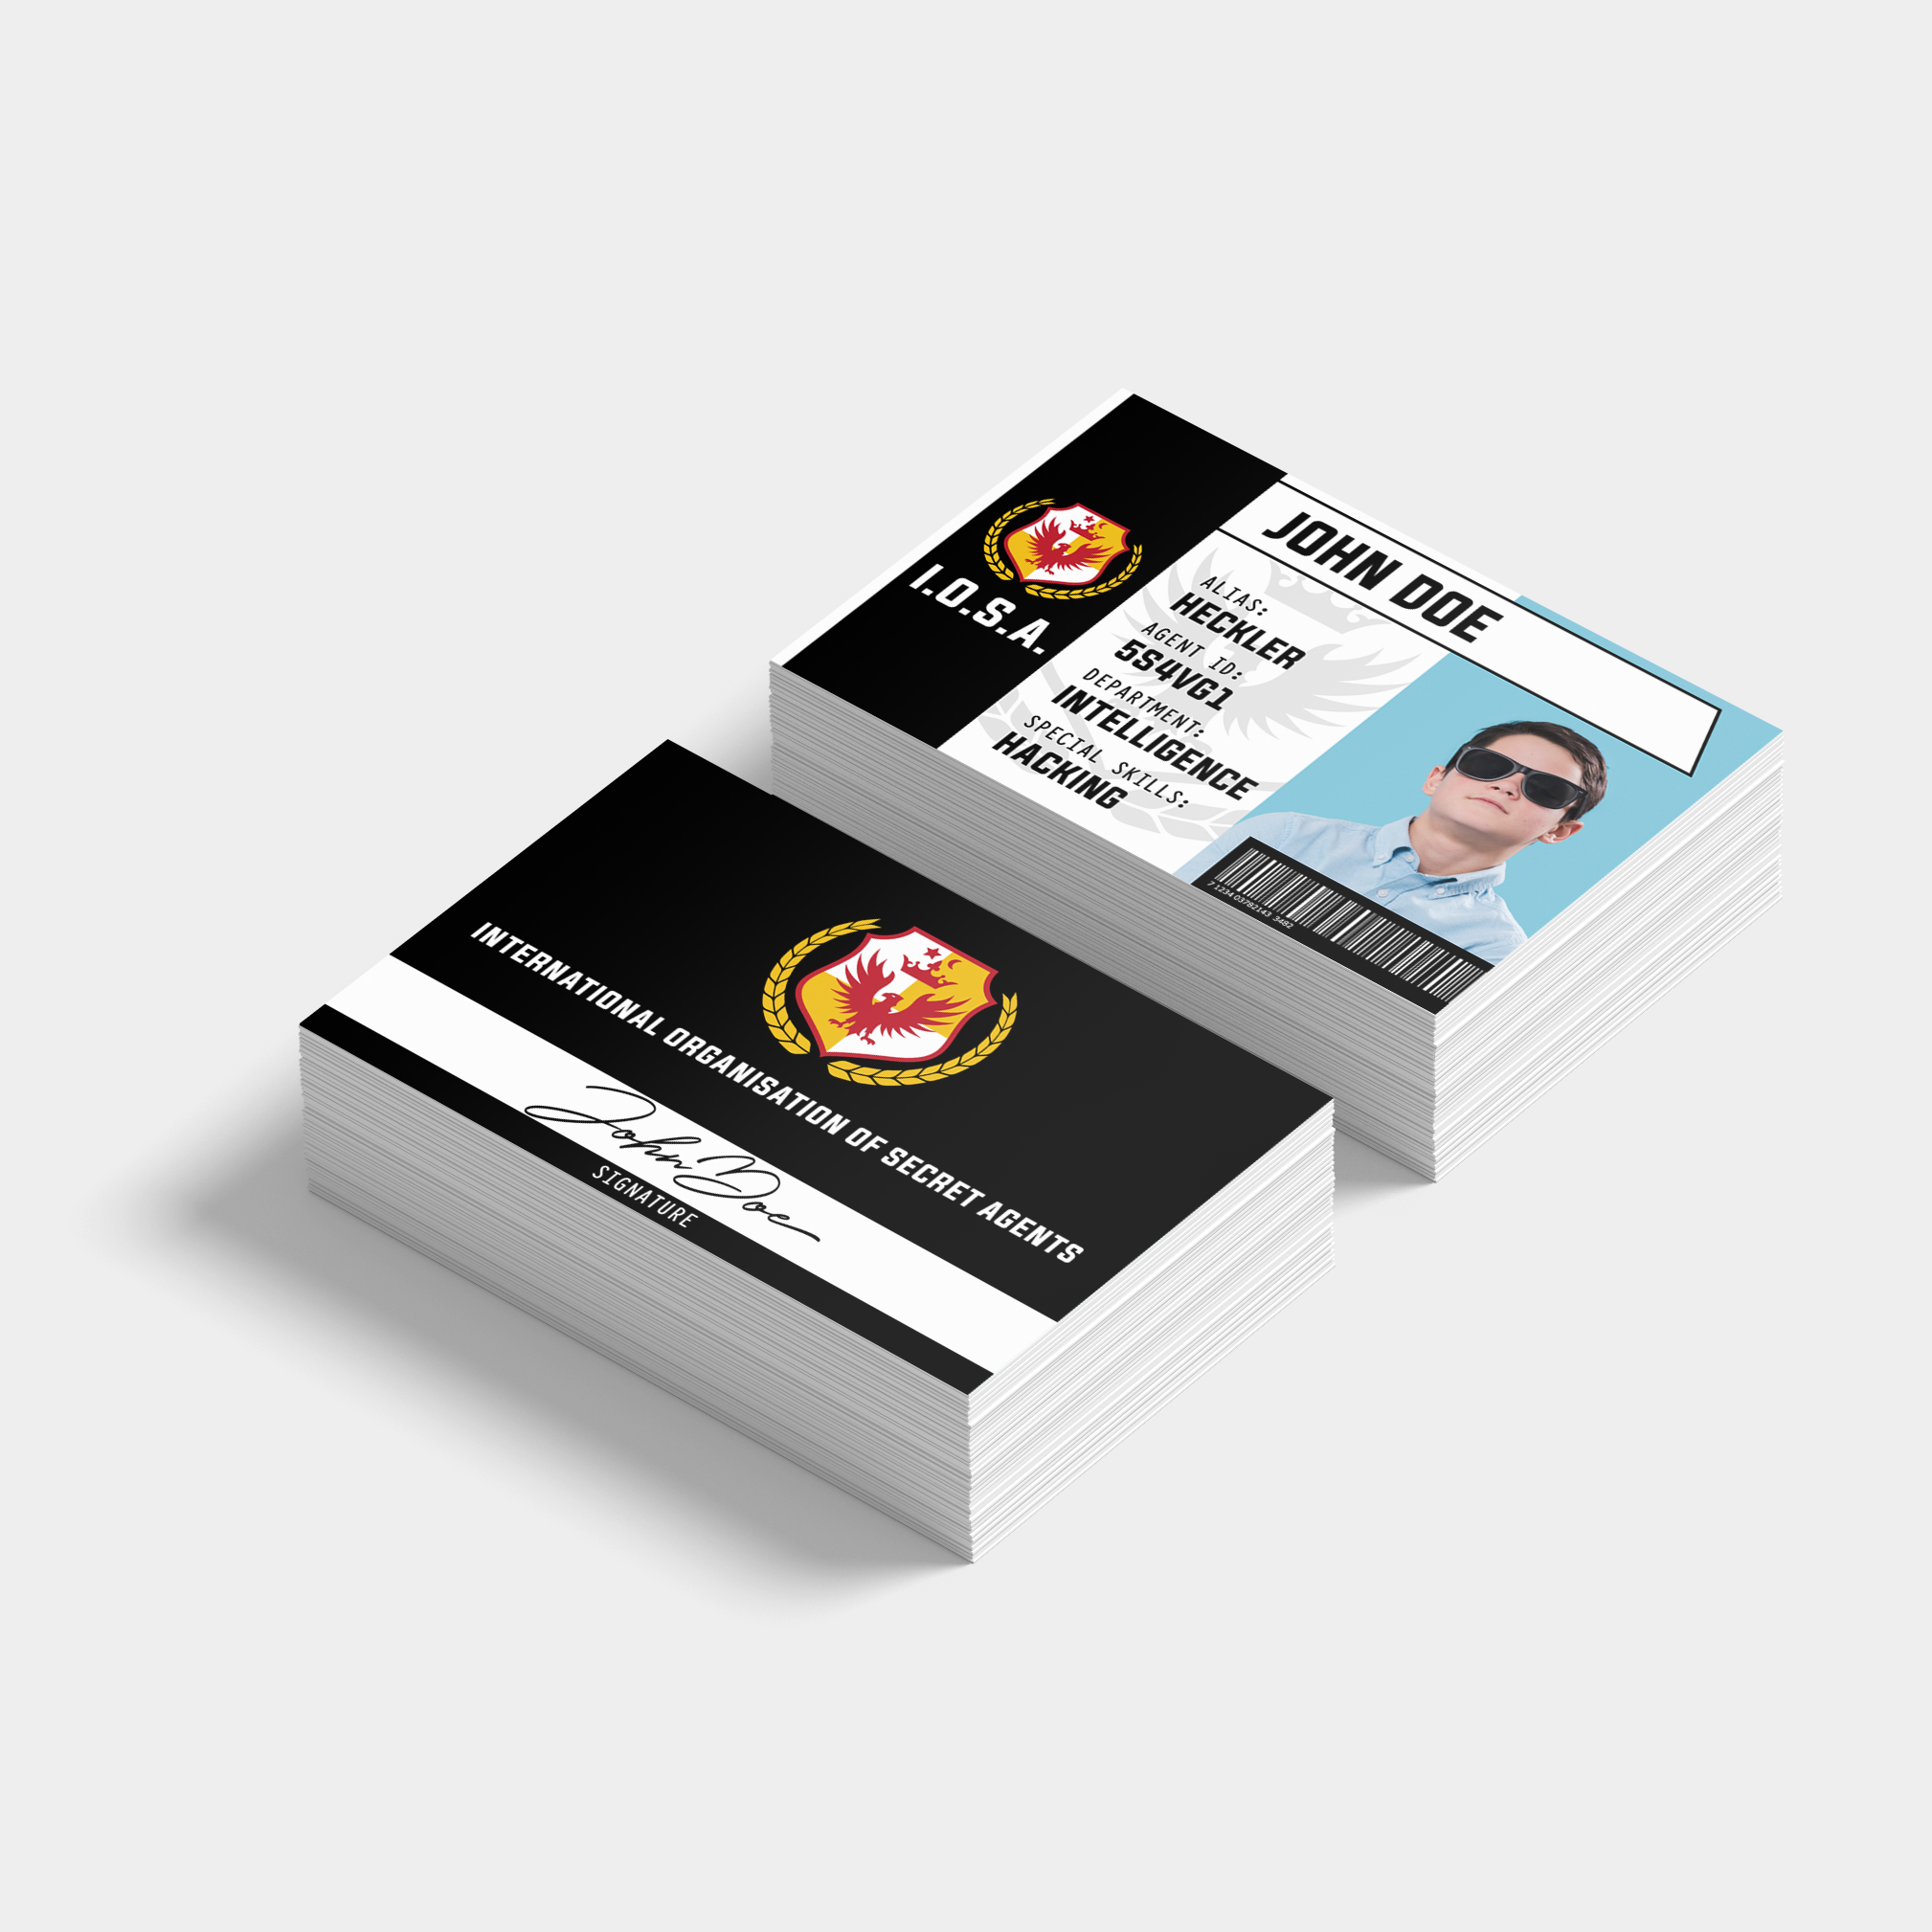 Secret Agent Namecards (85 x 55mm) - $16.00/ box of 100 cards